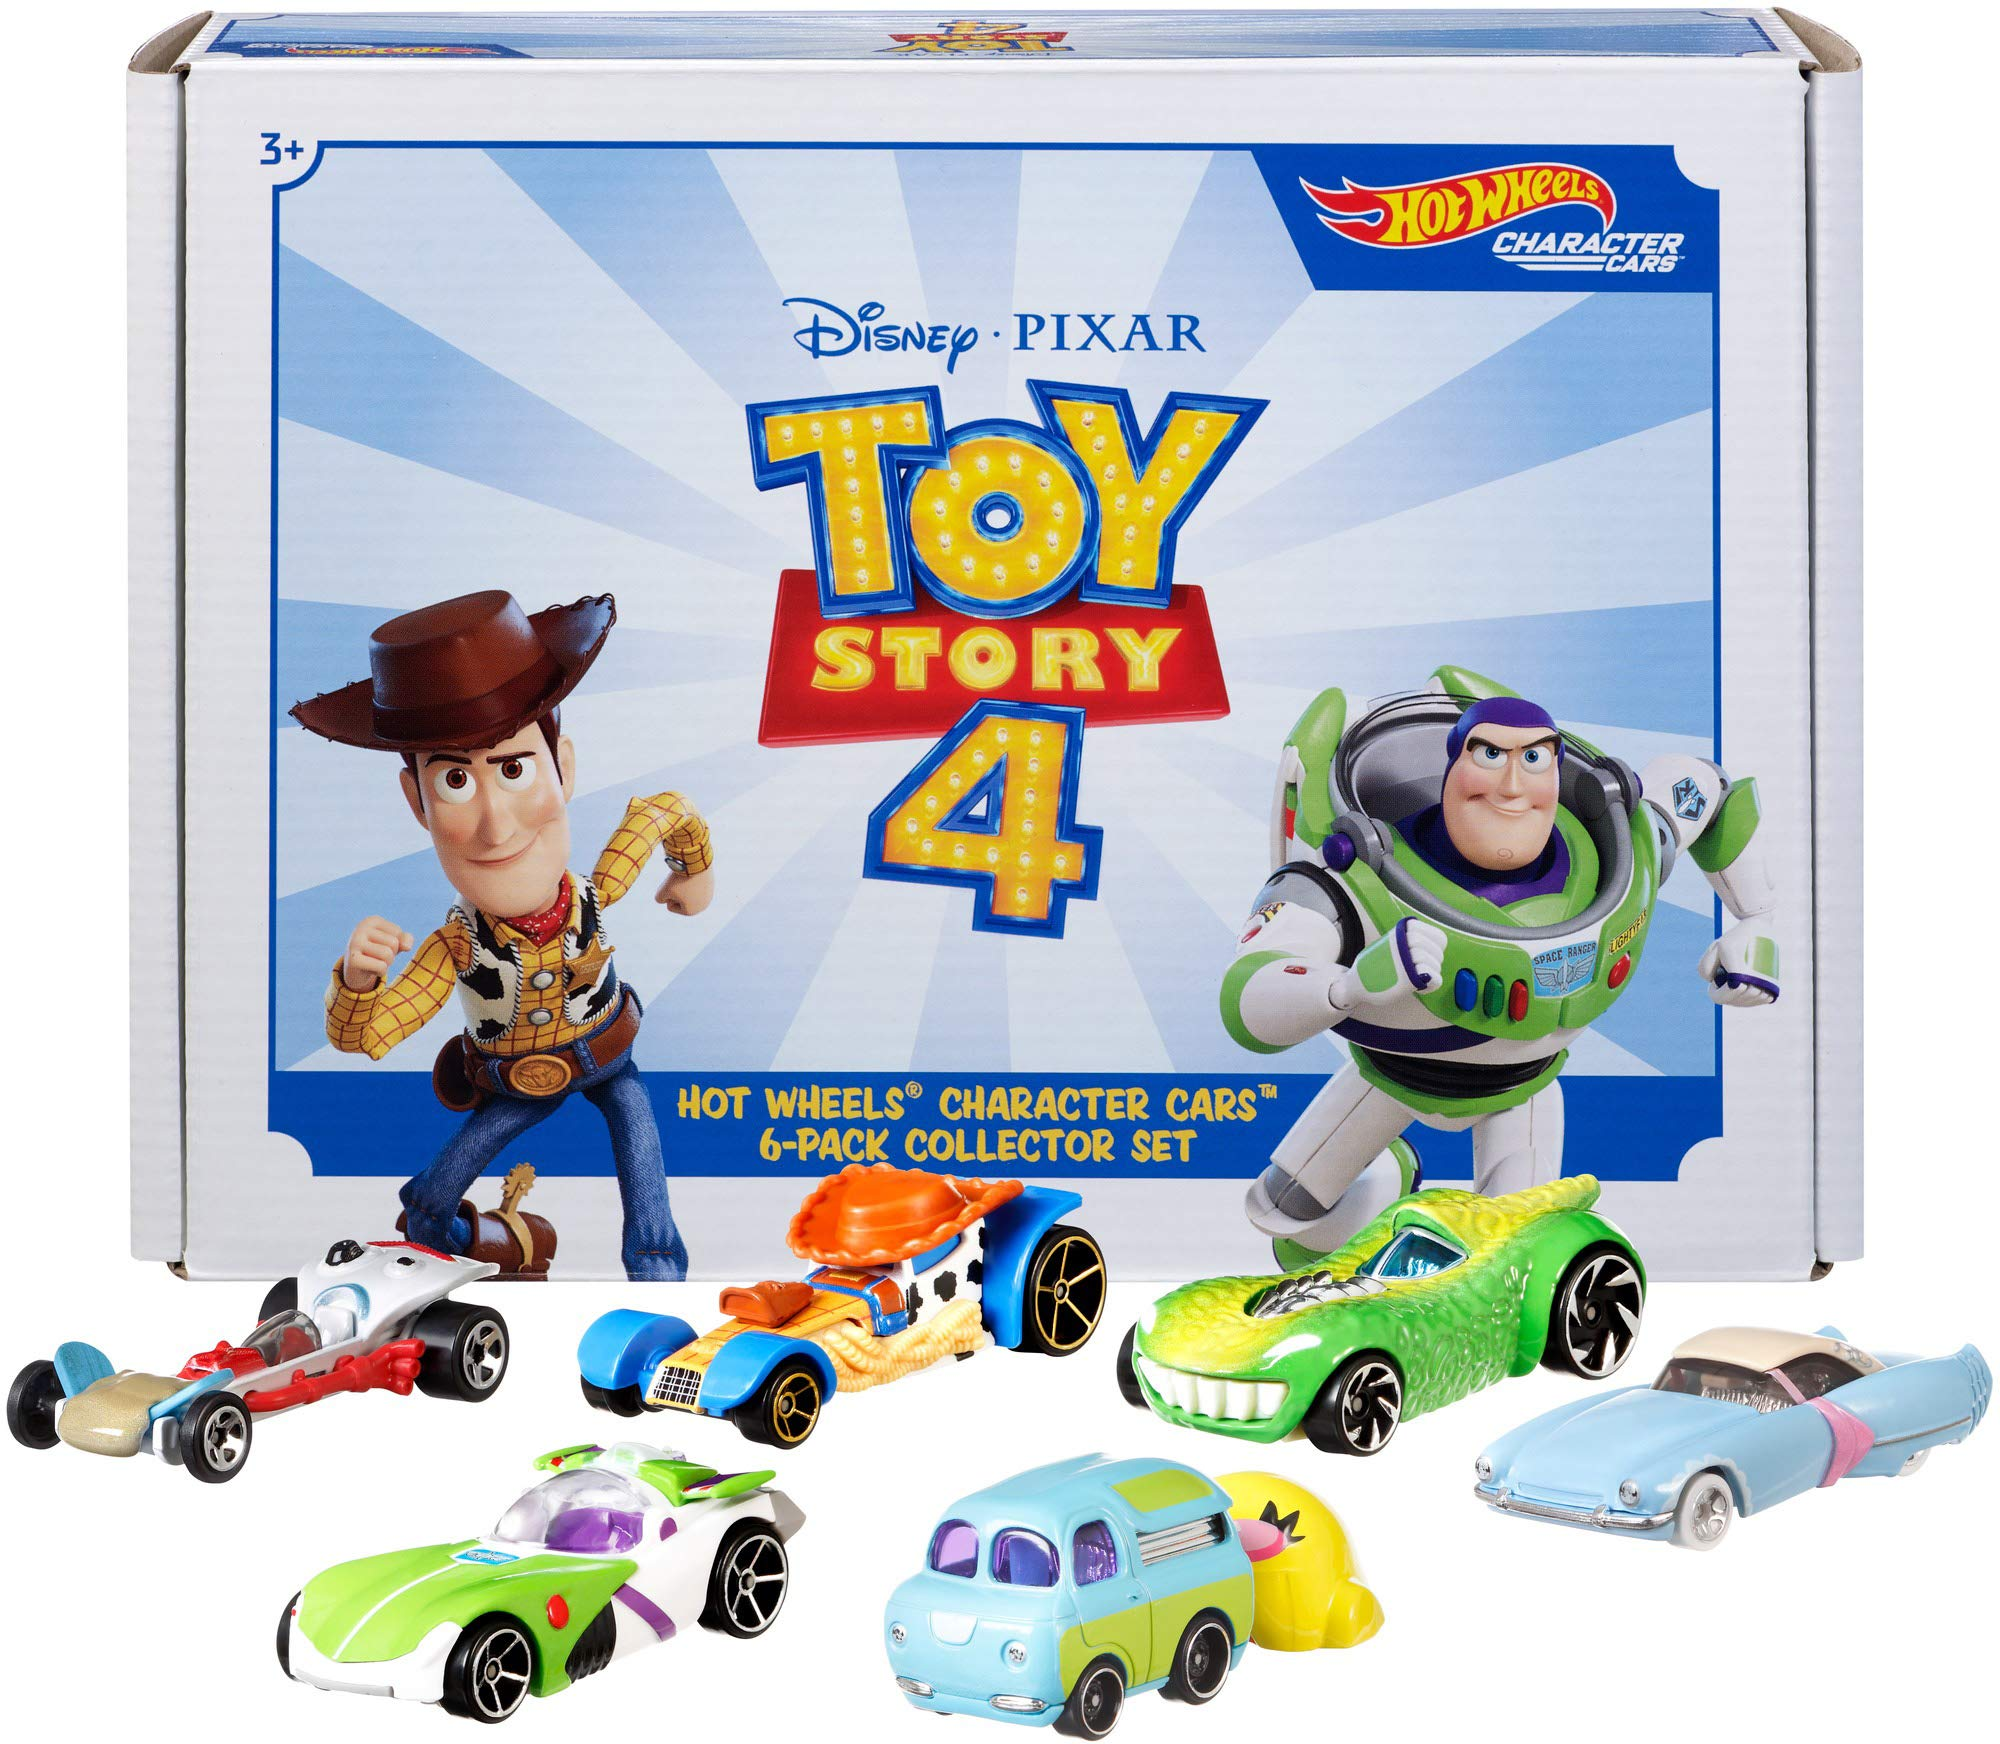 Hot Wheels Toy Story 4 Bundle Vehicles, 6 Pack (Amazon Exclusive) by Hot Wheels